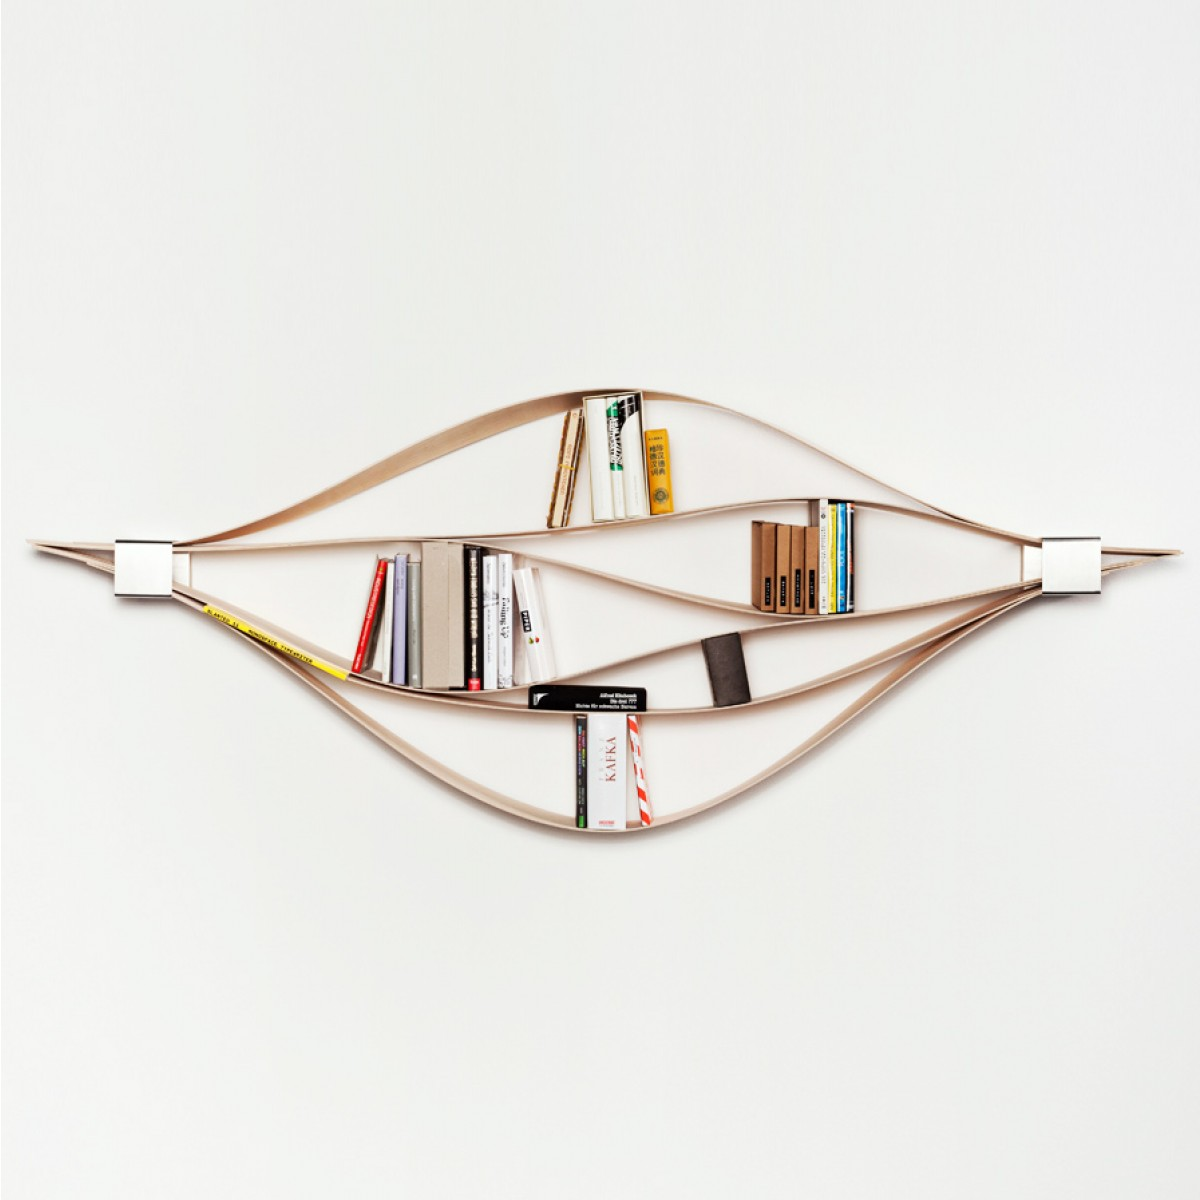 NEUVONFRISCH Chuck - The Flexible Wall Shelf (natural)